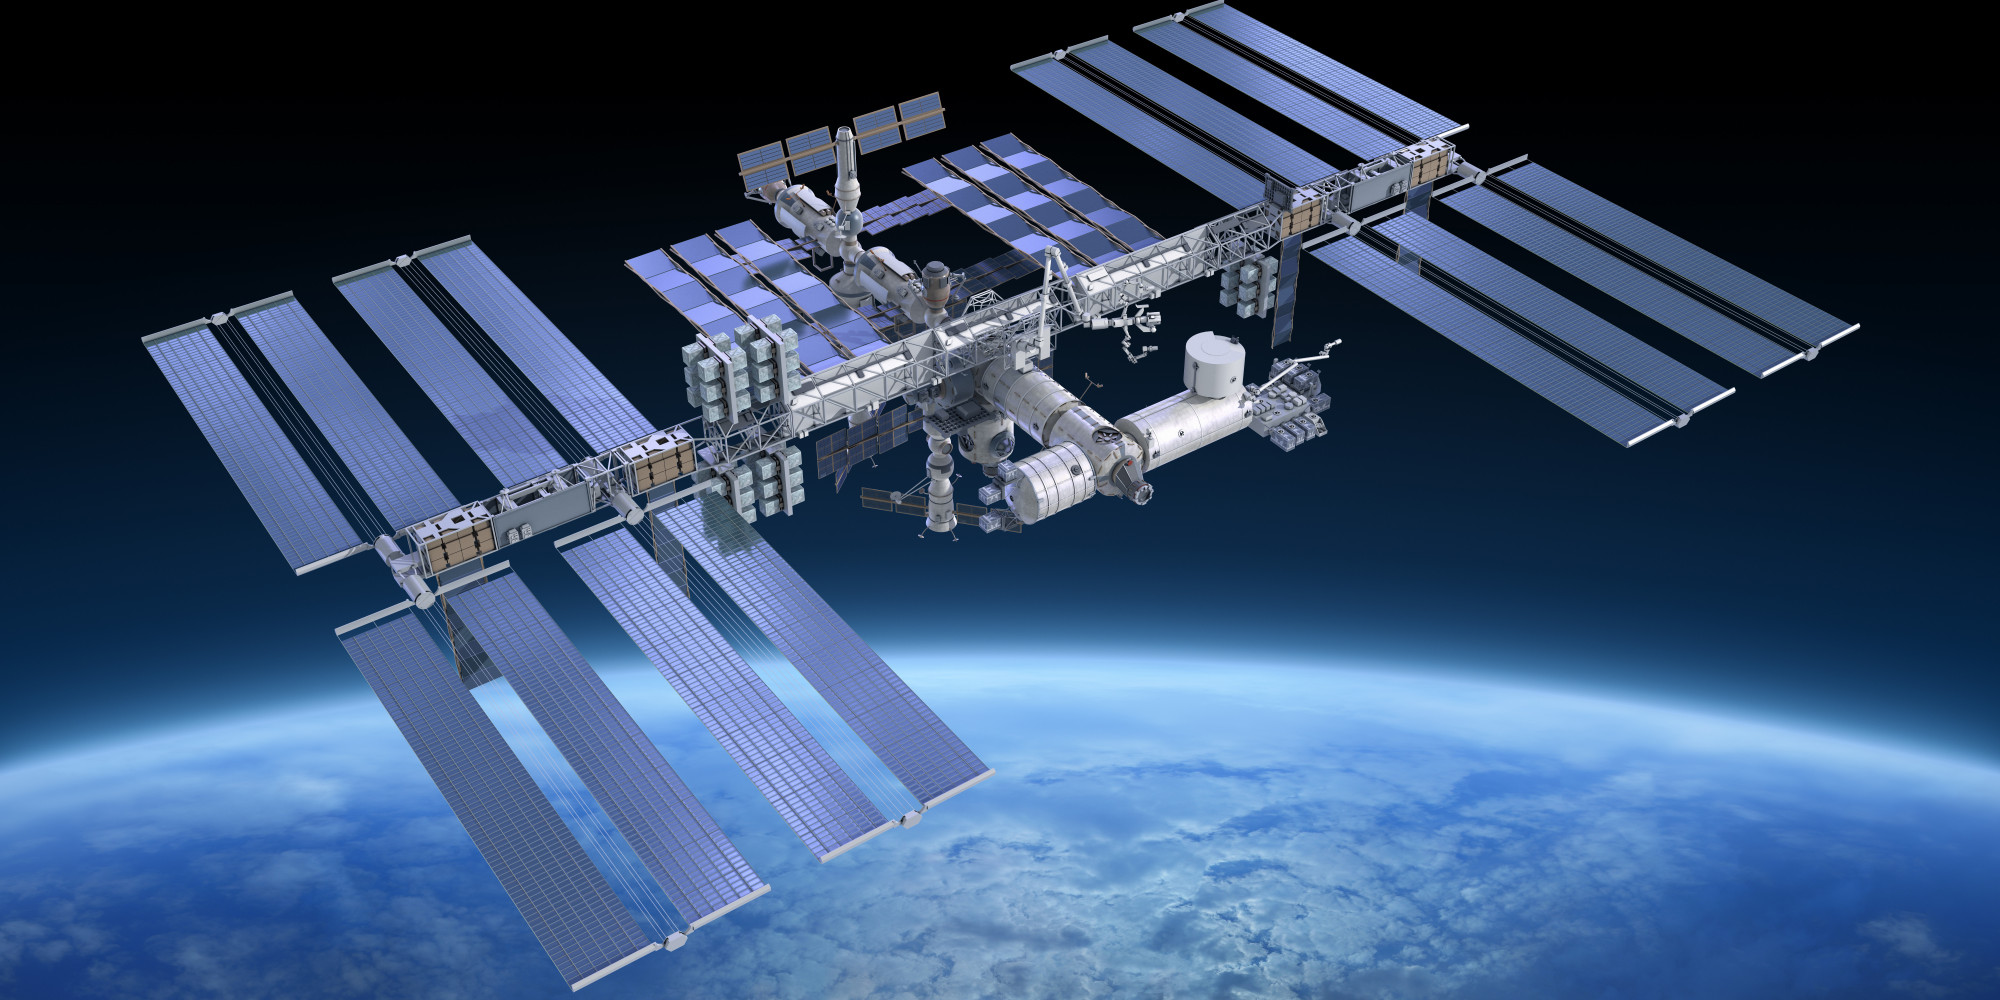 The ISS completed its 100,000th orbit around the planet Earth on Monday, May 16th.